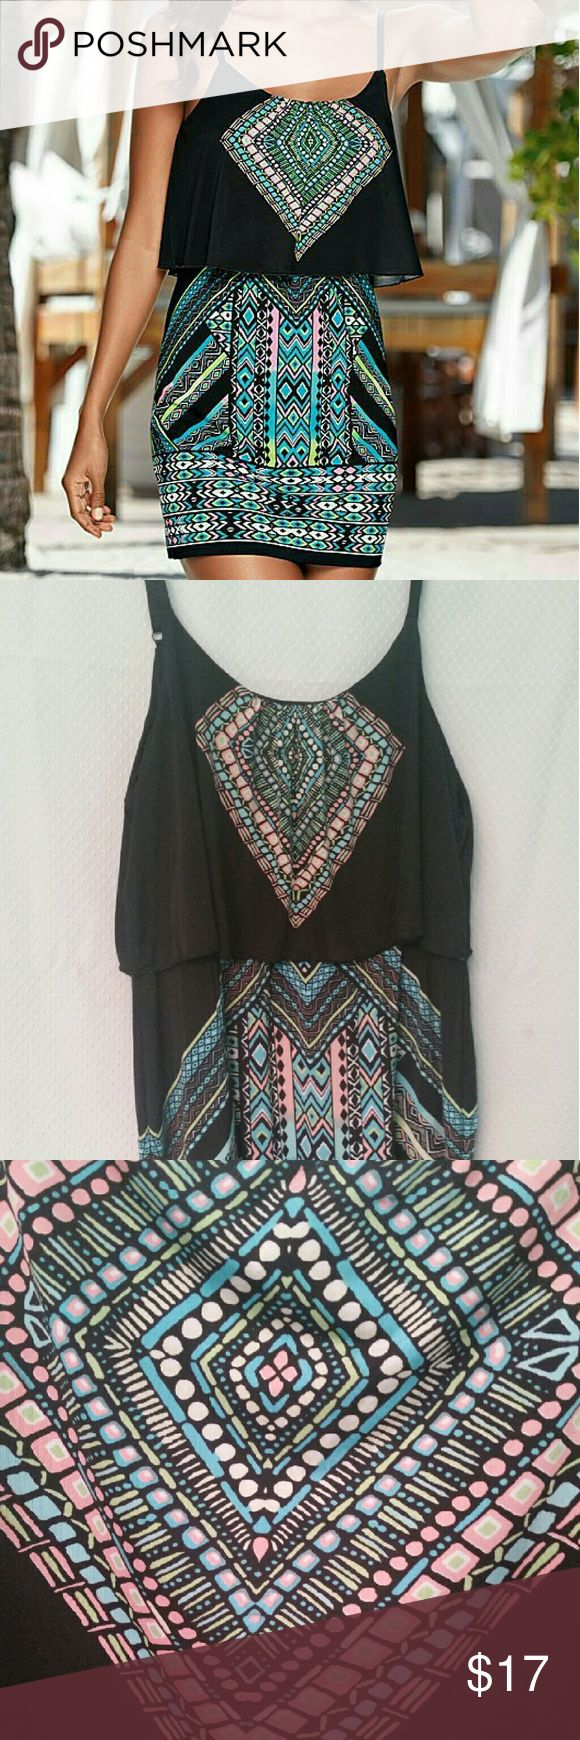 Venus mini printed dress Worn once...very cute...fun tribal print dress venus Dresses Mini